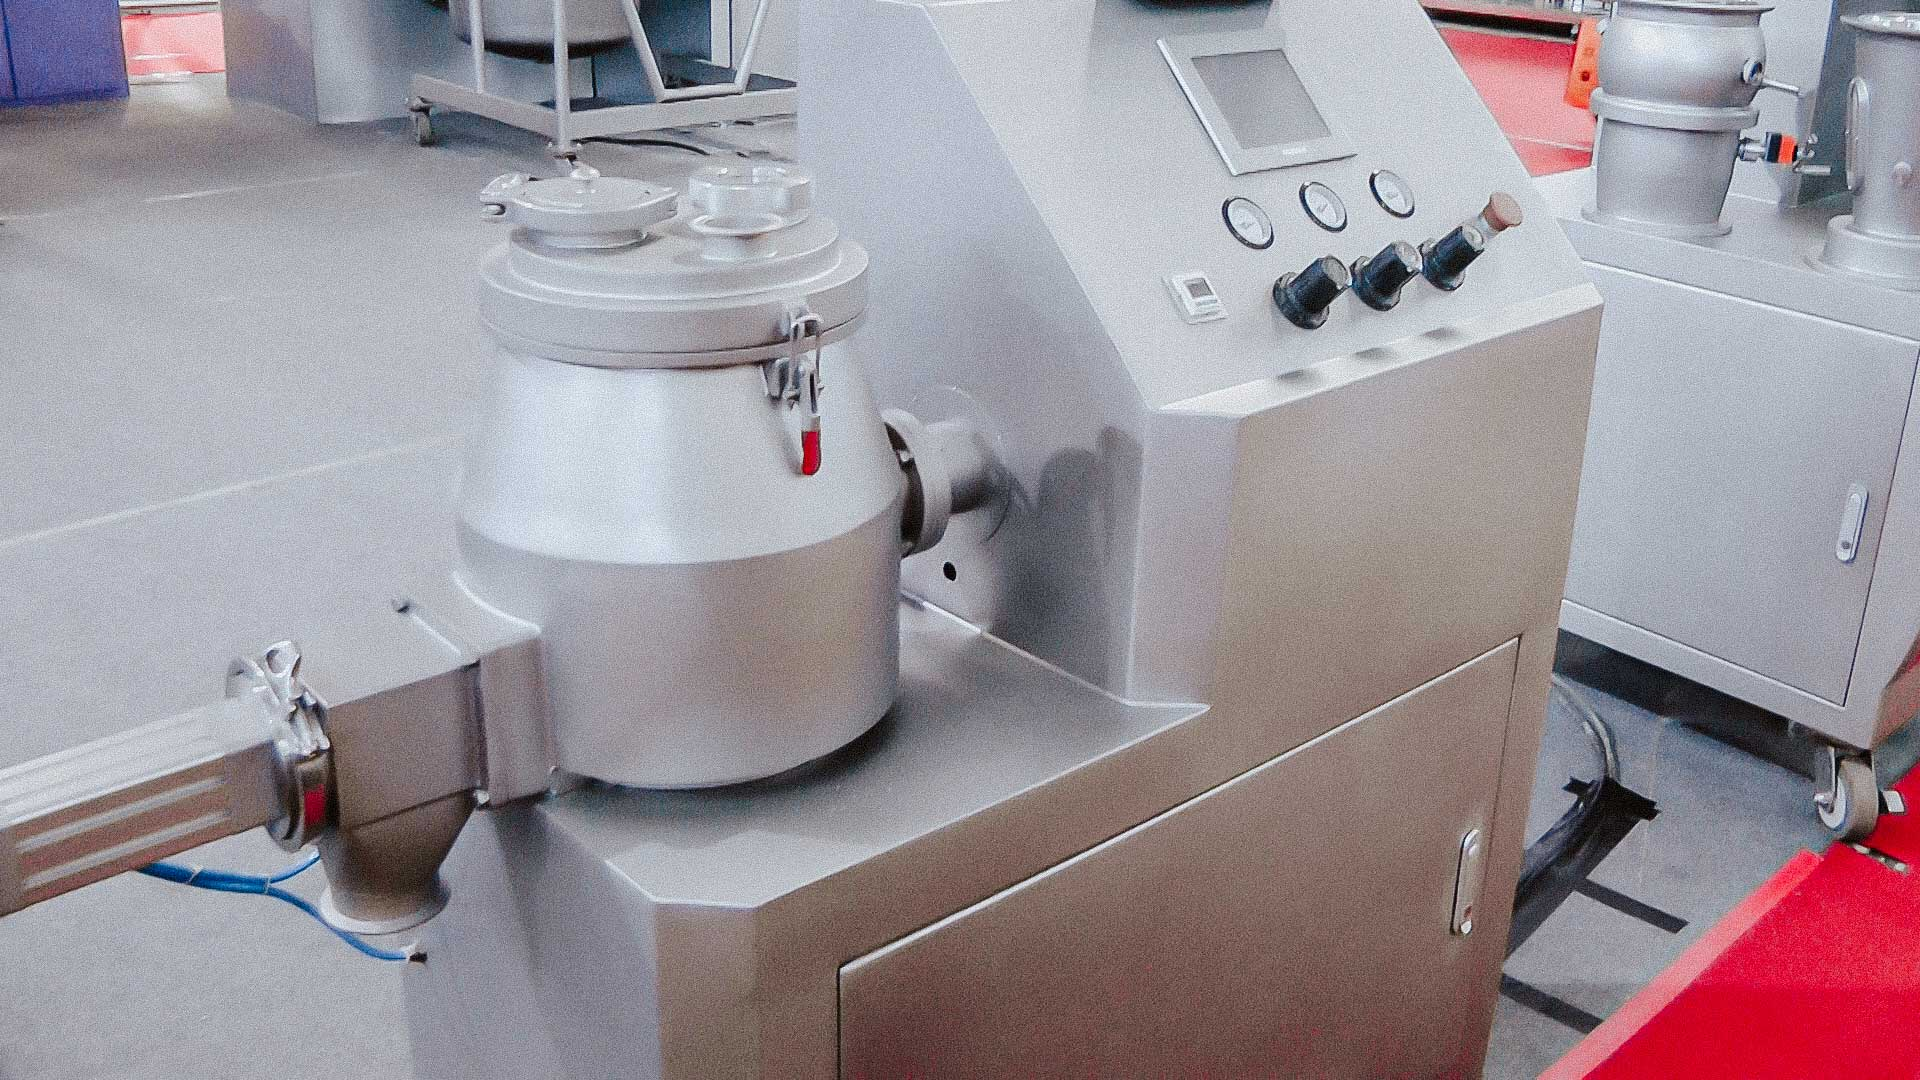 Powder granulator for preparation of granular medicines and food products